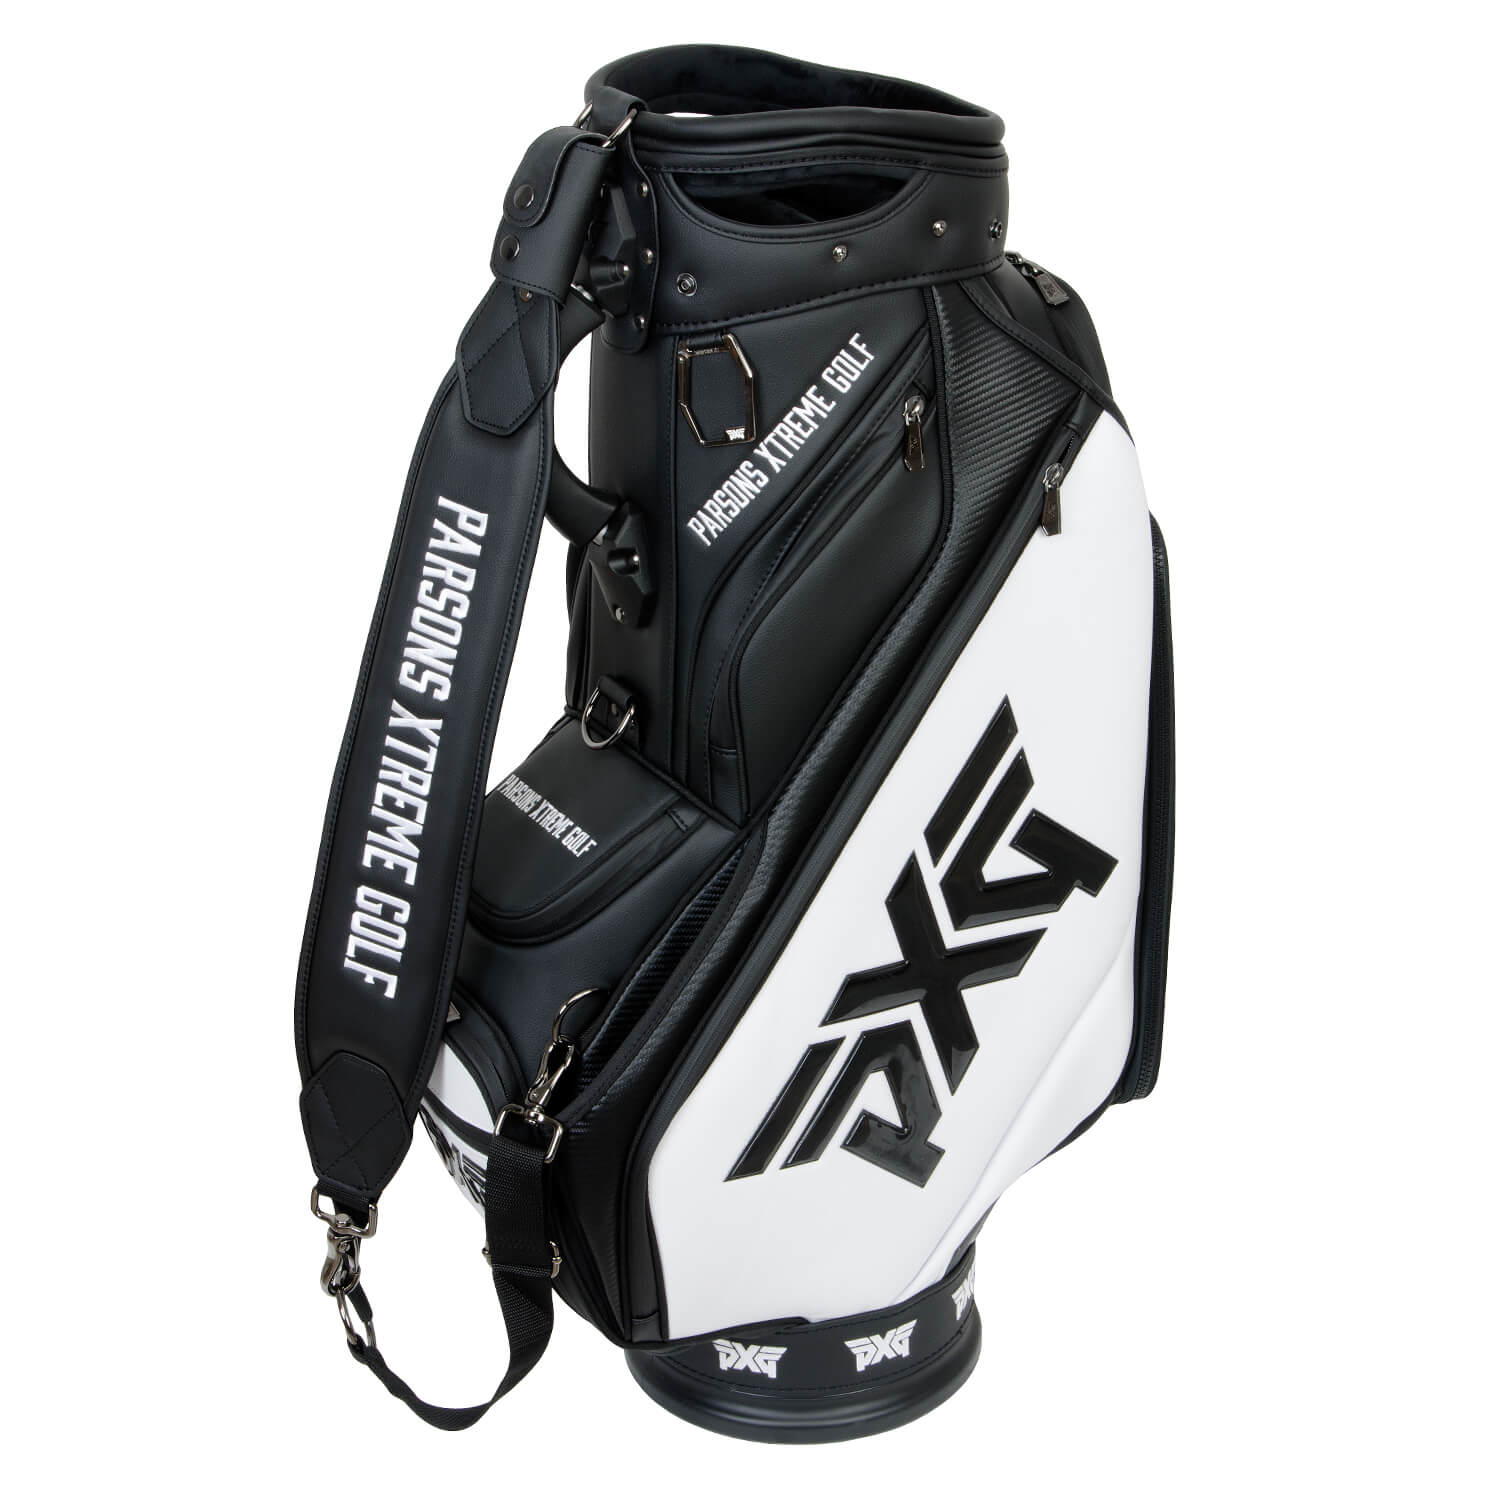 PXG Golf Tour Staff Bag